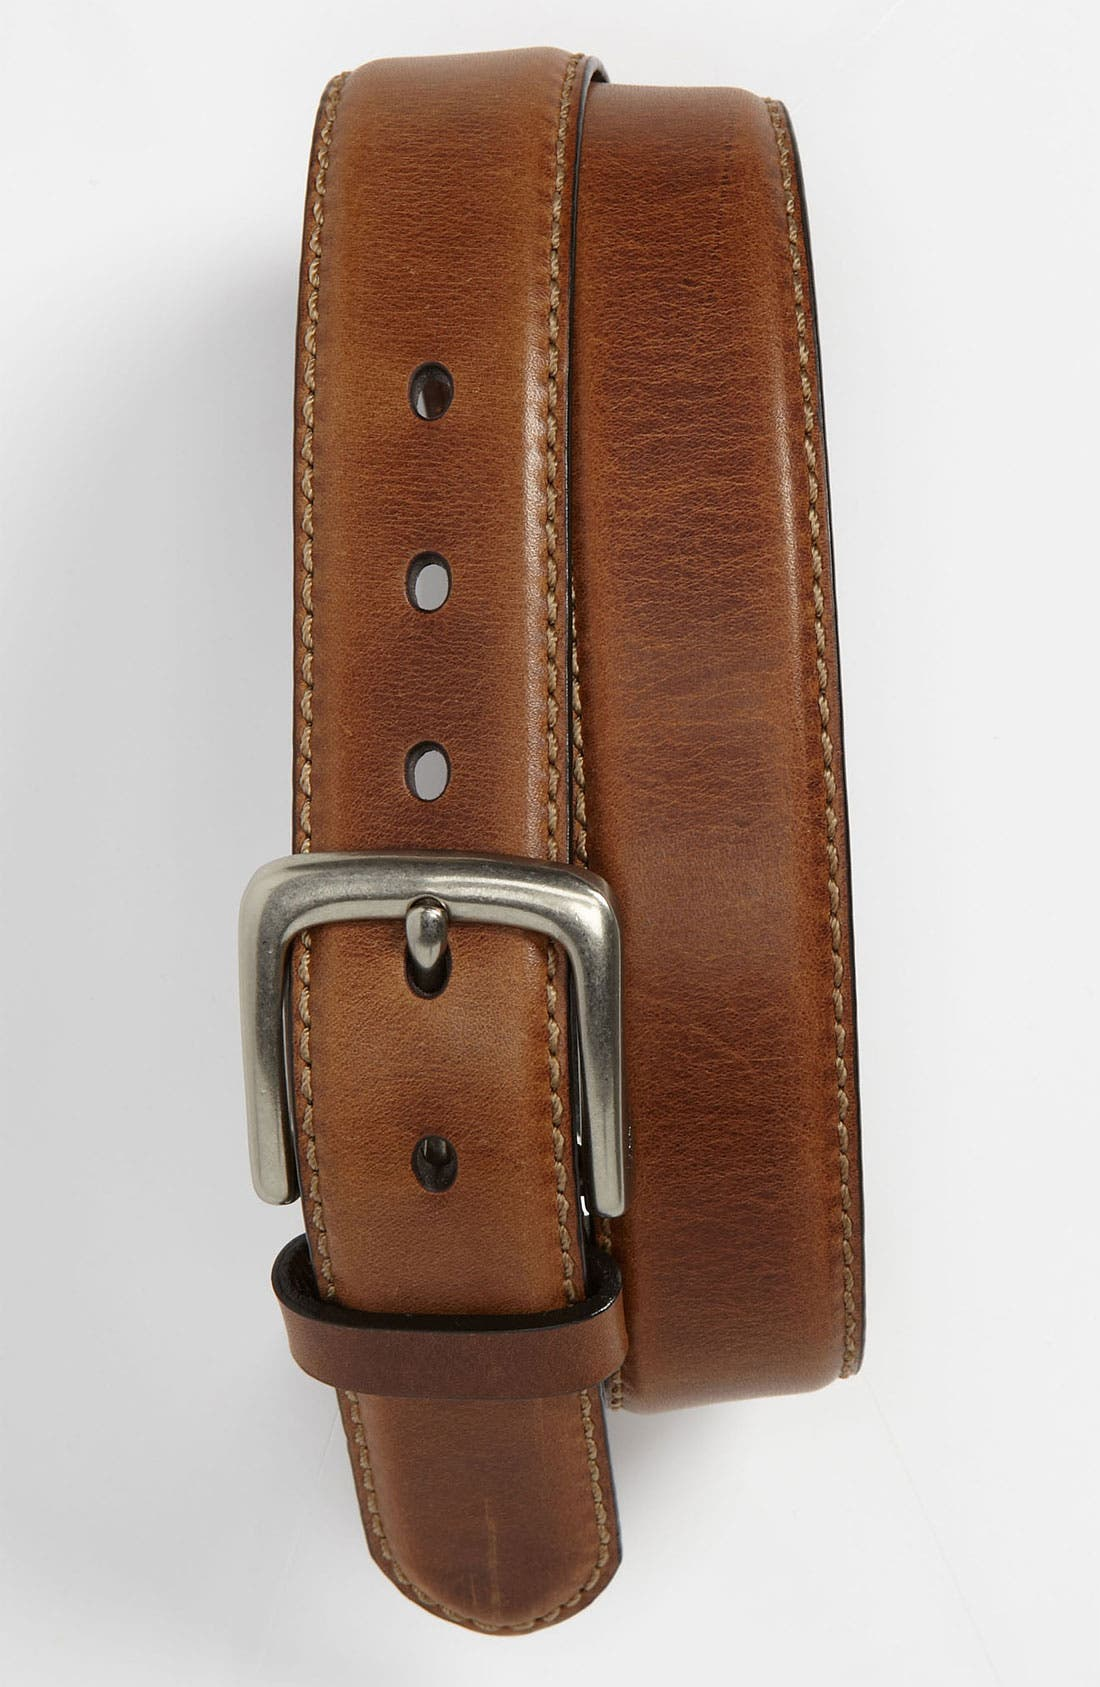 Alternate Image 1 Selected - Fossil 'Aiden' Leather Belt